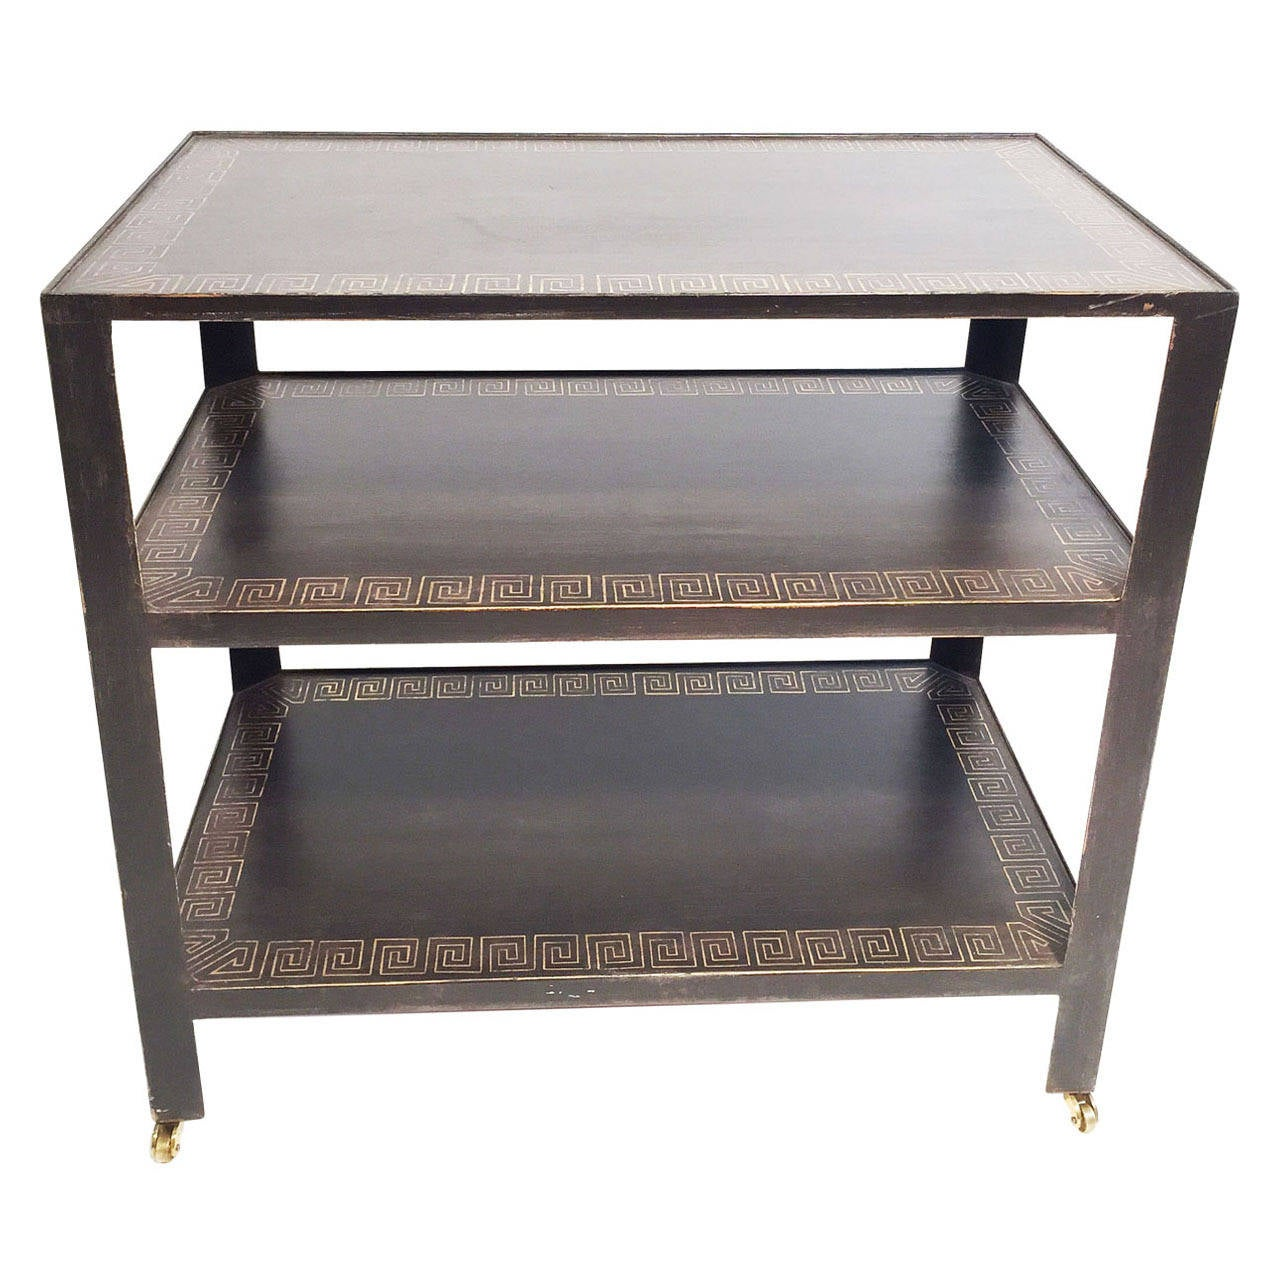 Nancy corzine accessory table with custom greek key border for Table no border